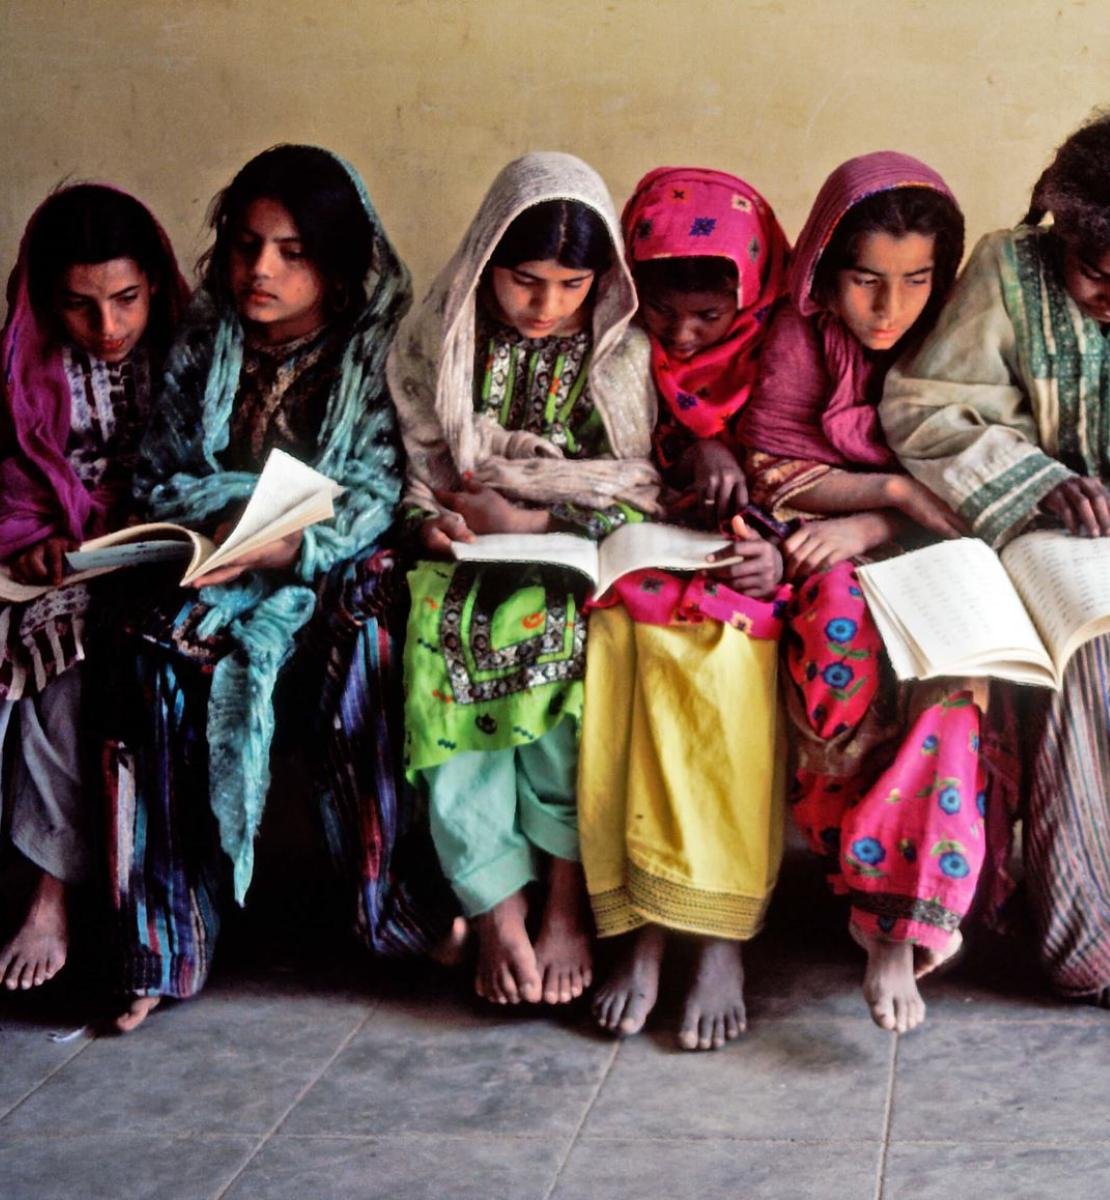 Several children dressed in bright colors look down at books.